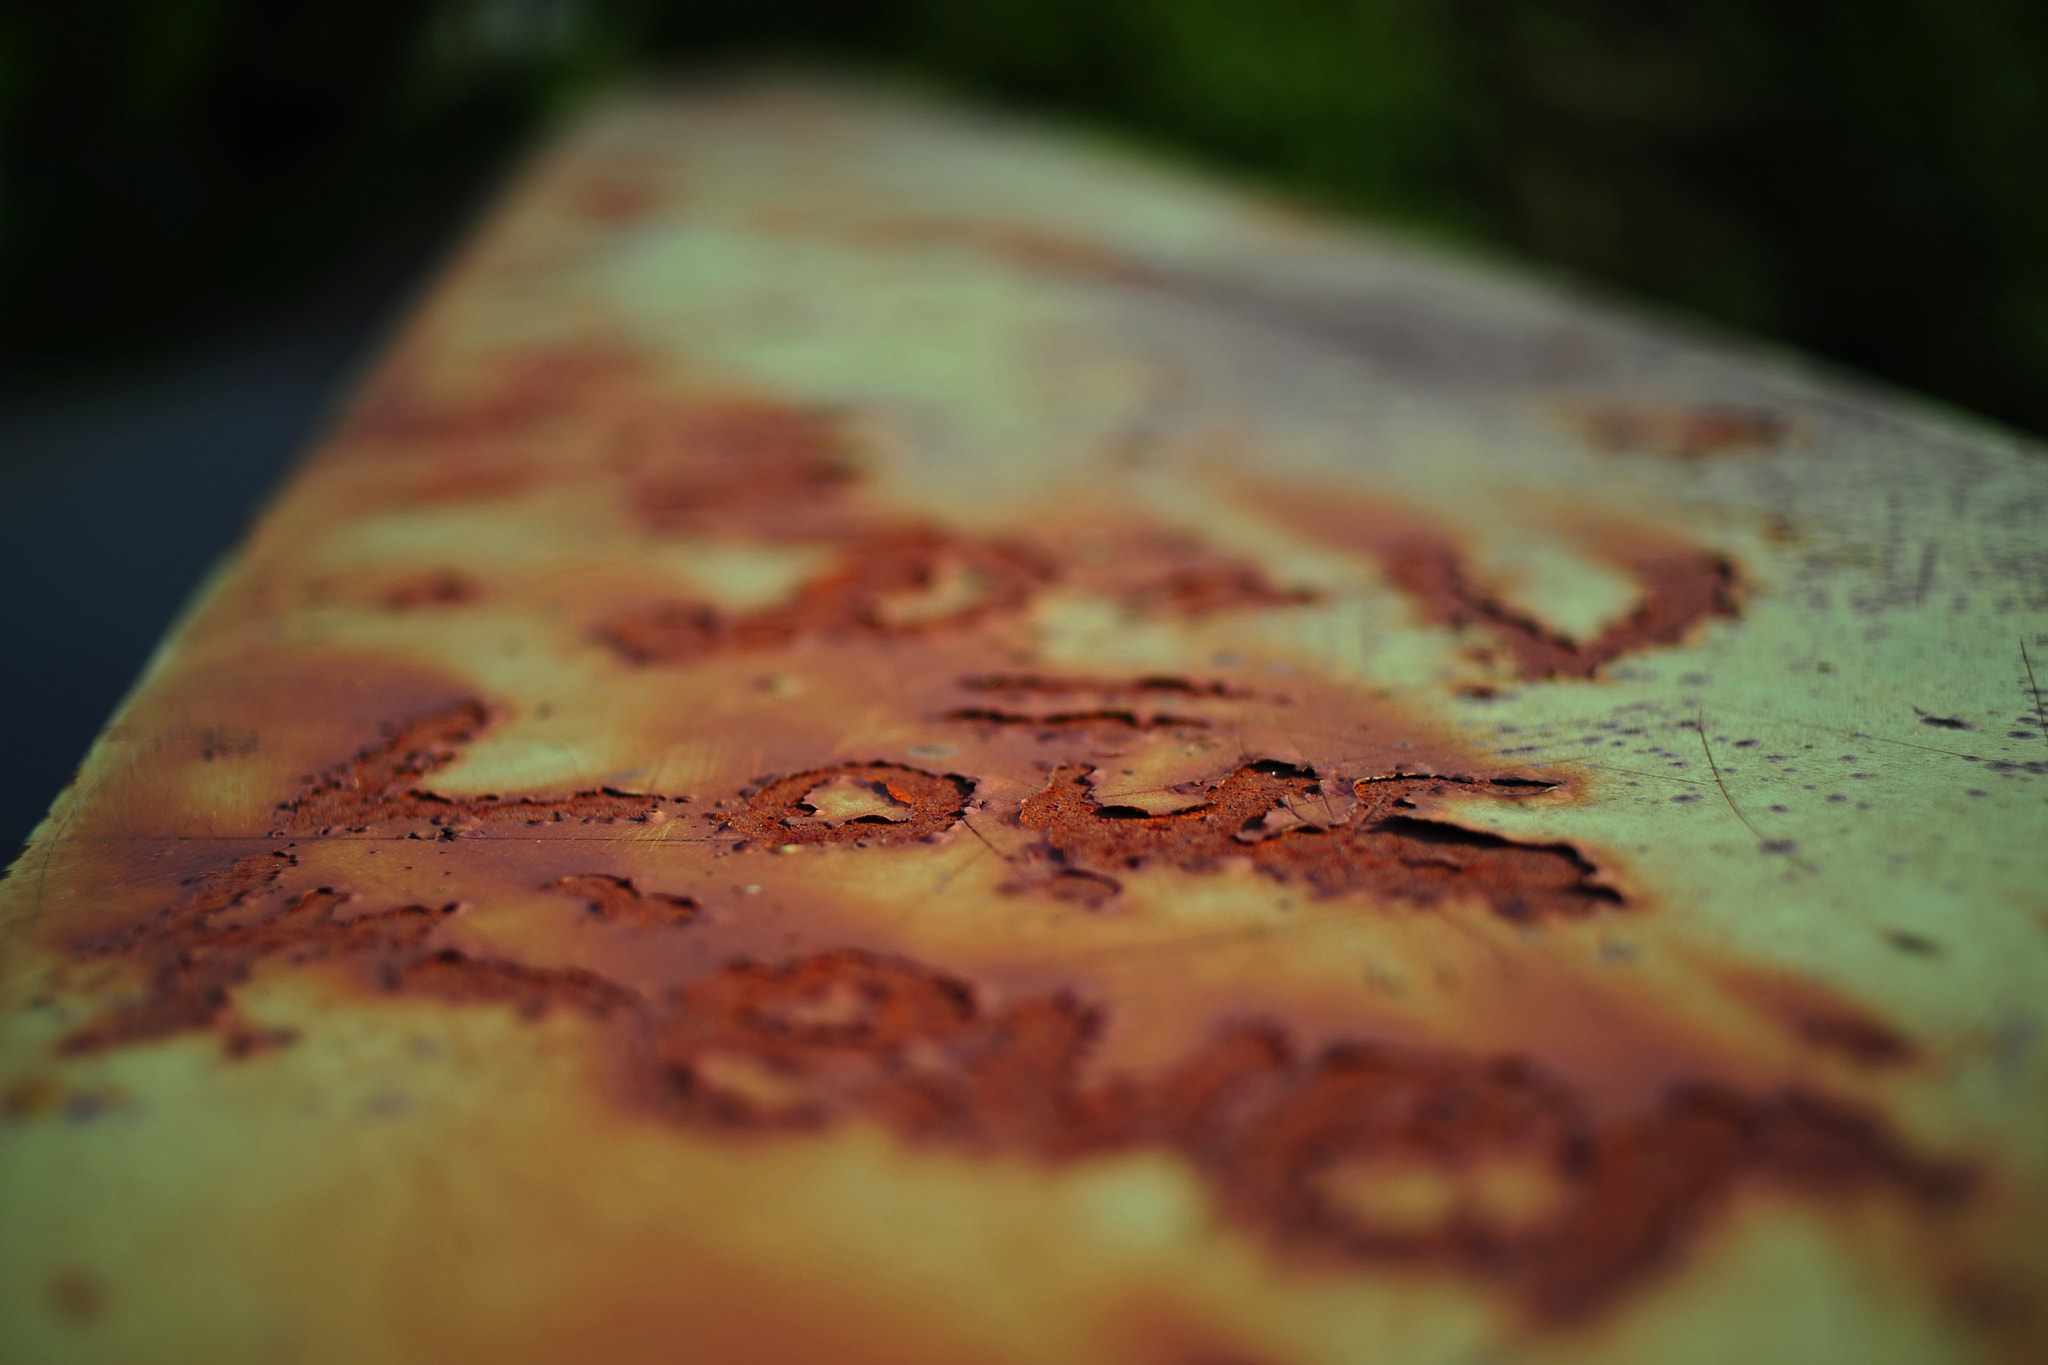 Photograph Rusting Love by Michael Hubrich on 500px